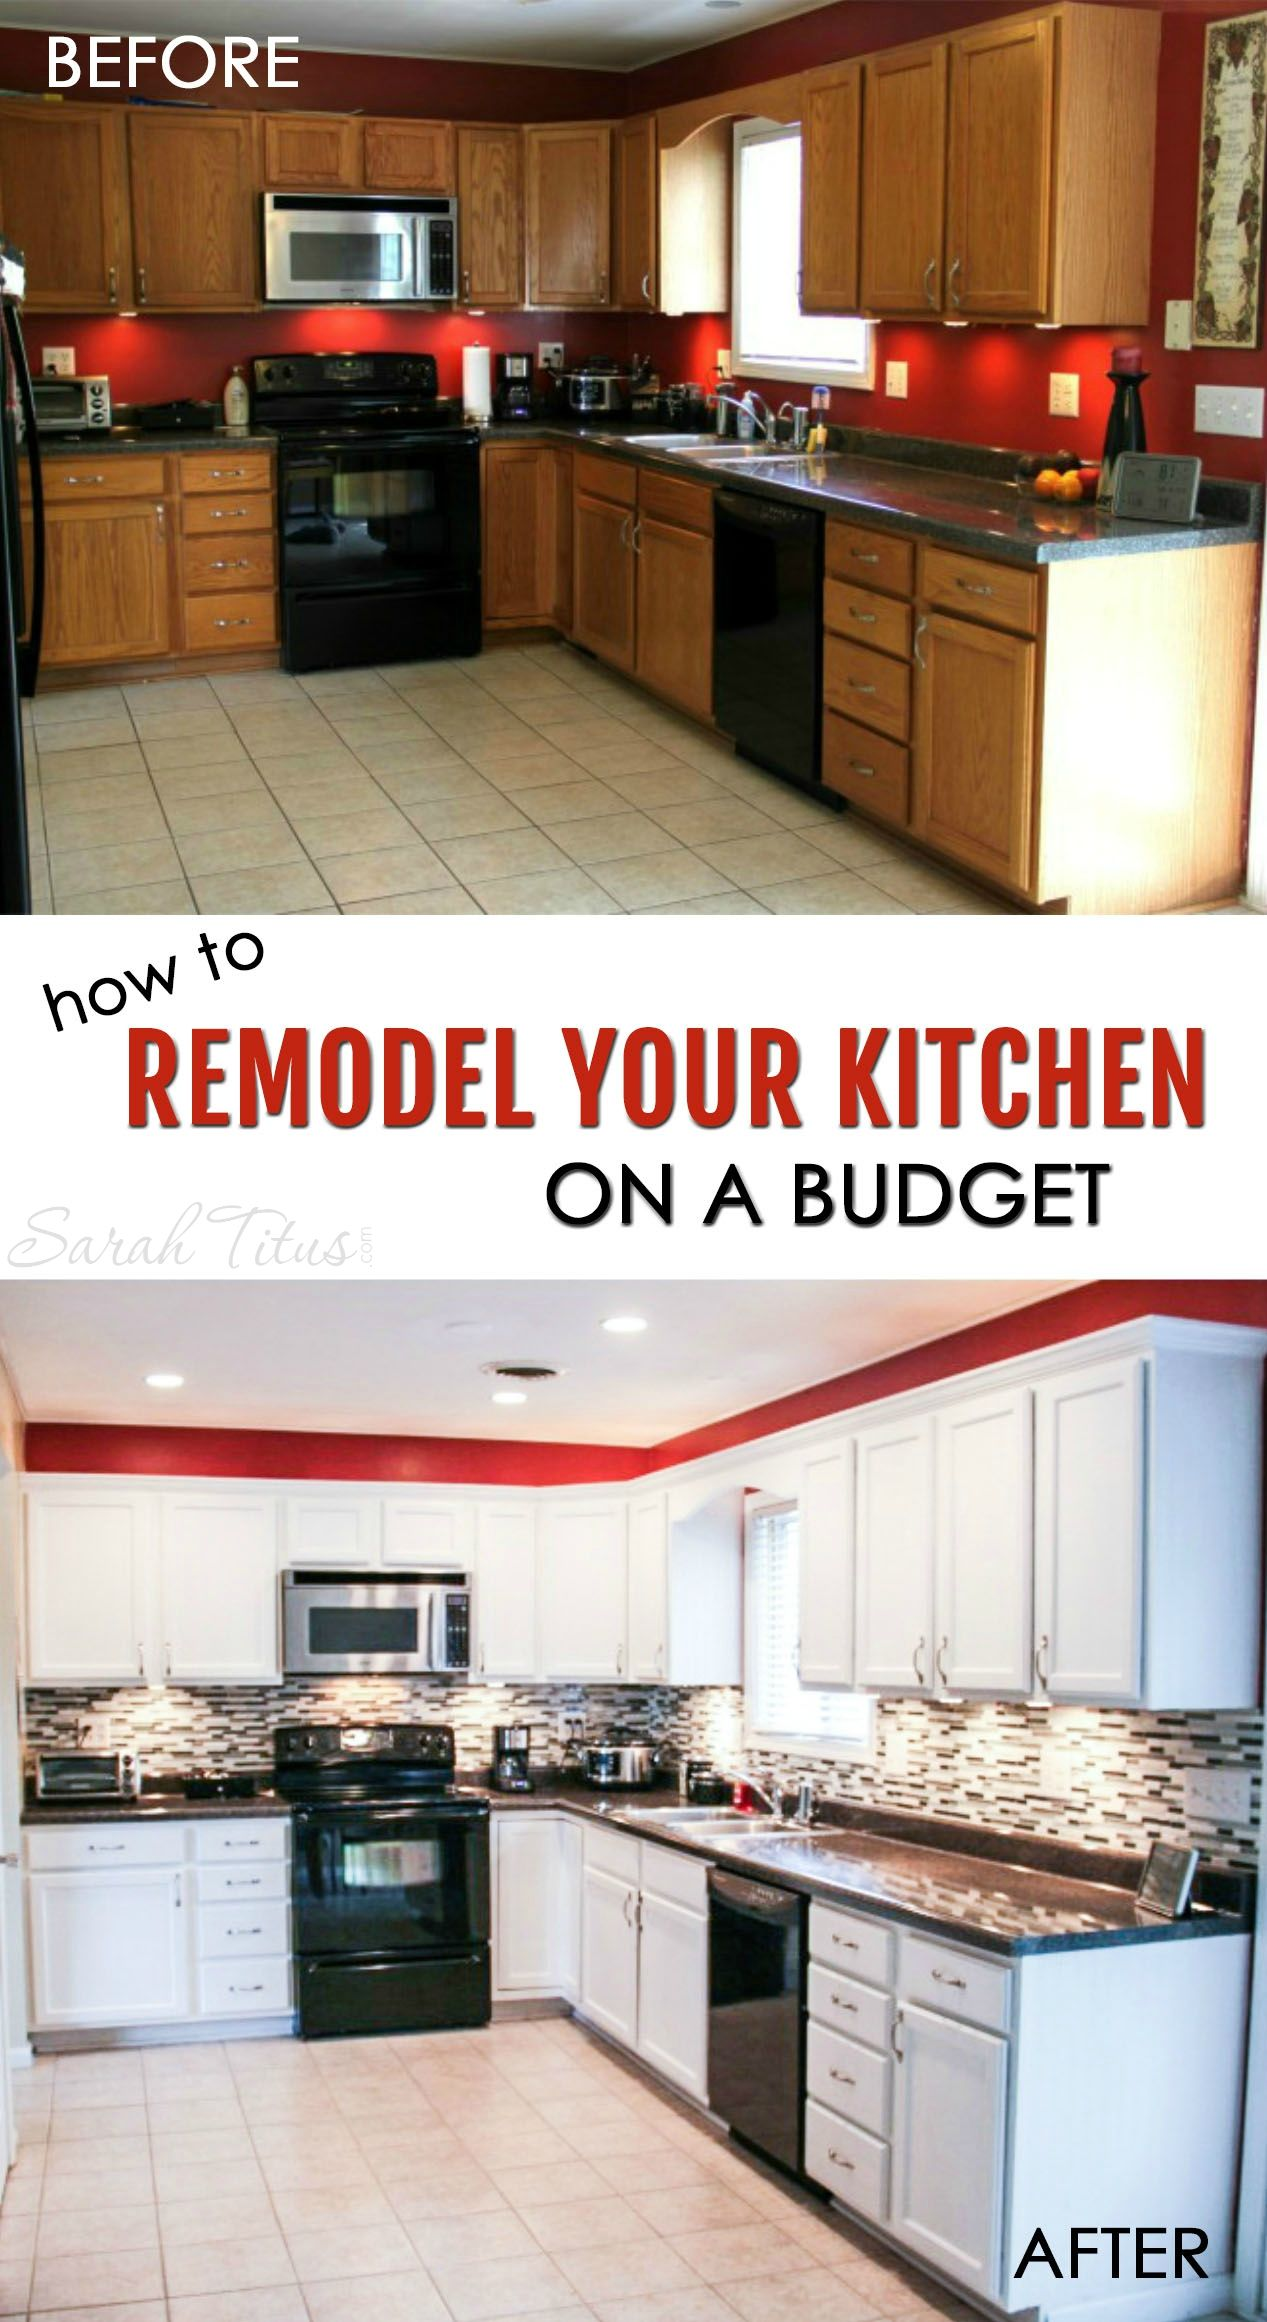 How To Remodel Your Kitchen On A Budget | Küche einrichten, Küche ...